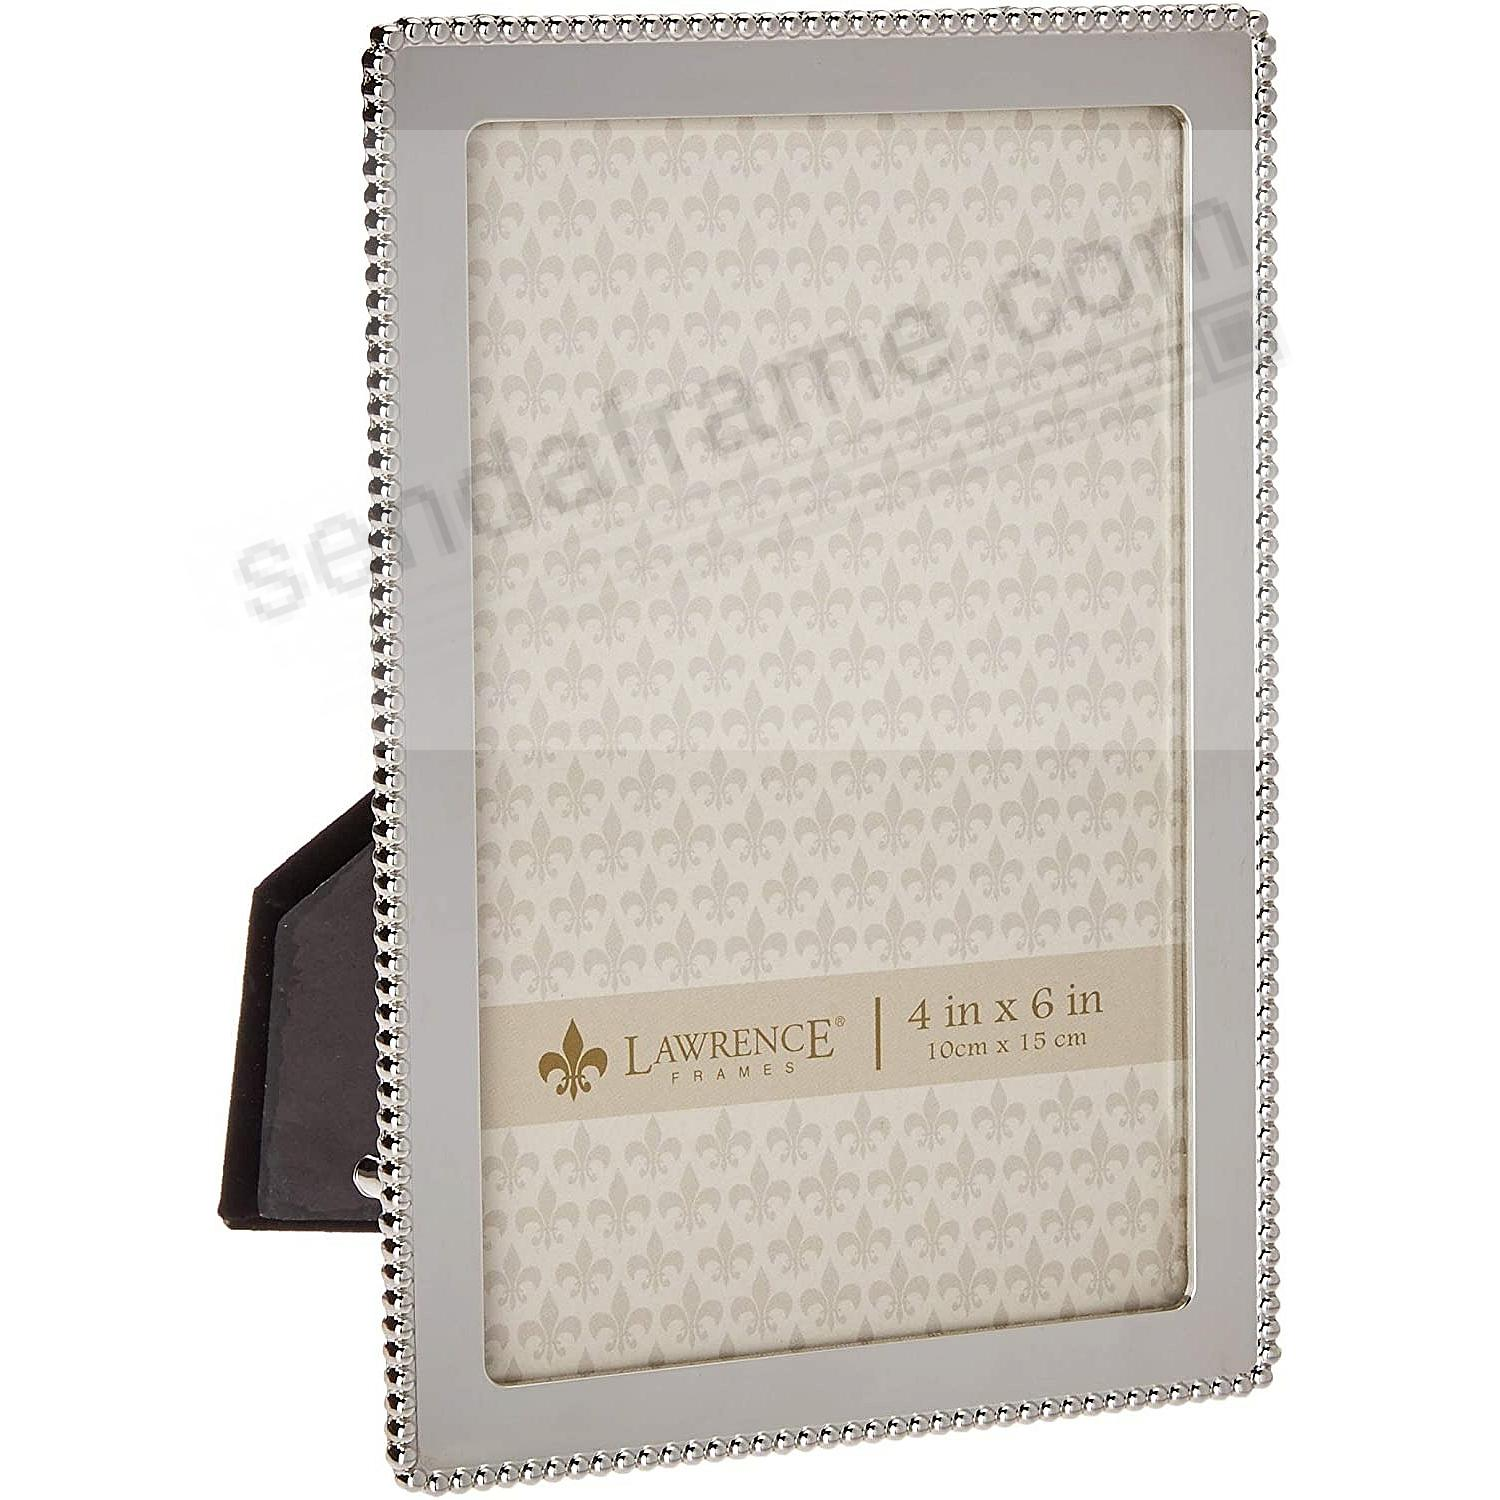 ROUNDED CORNER BEAD Silver Classic 4x6 frame by Lawrence®